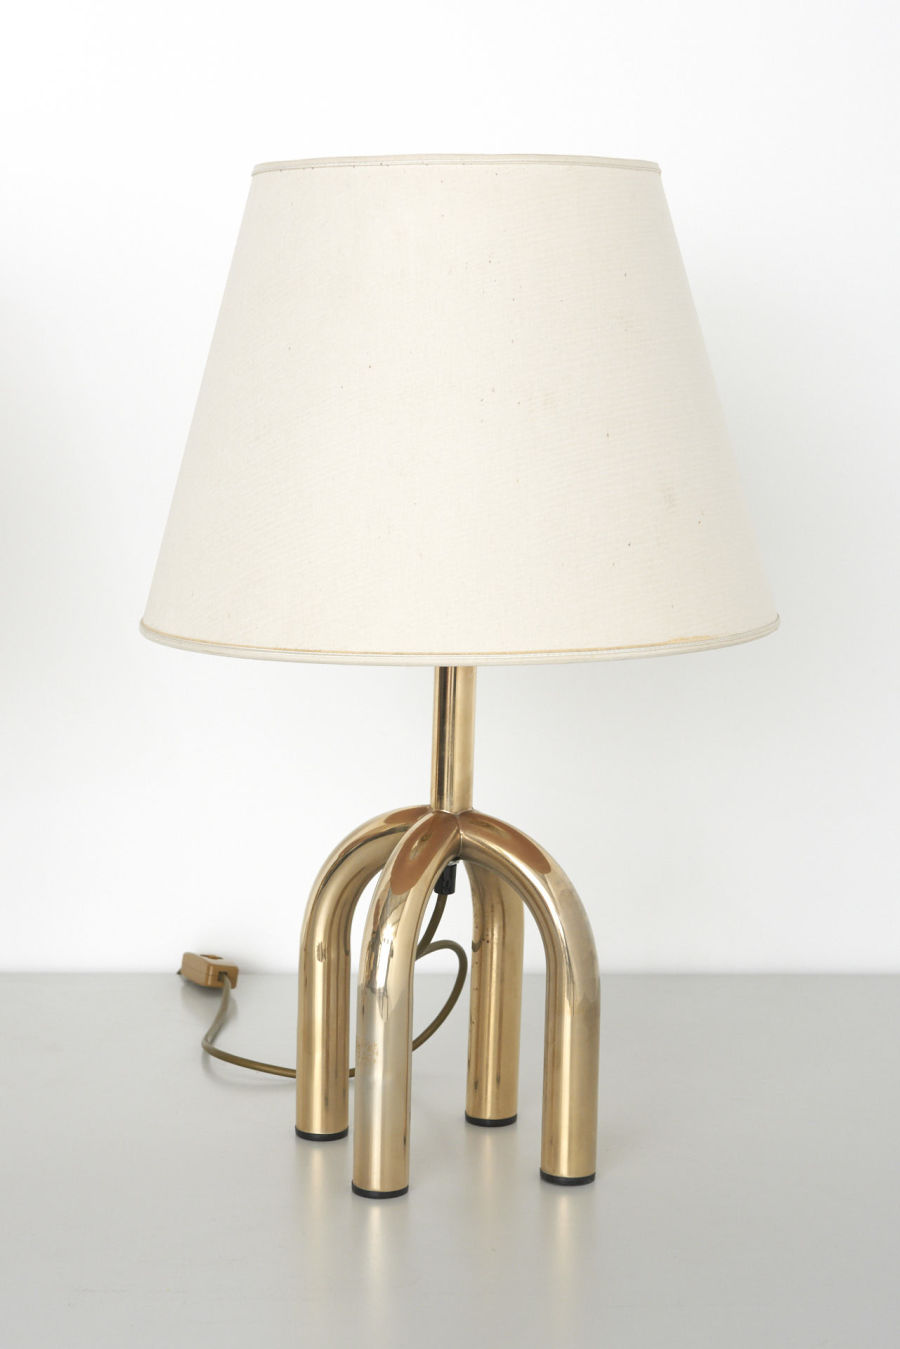 modestfurniture-vintage-2285-pair-table-lamps-4-brass-legs08